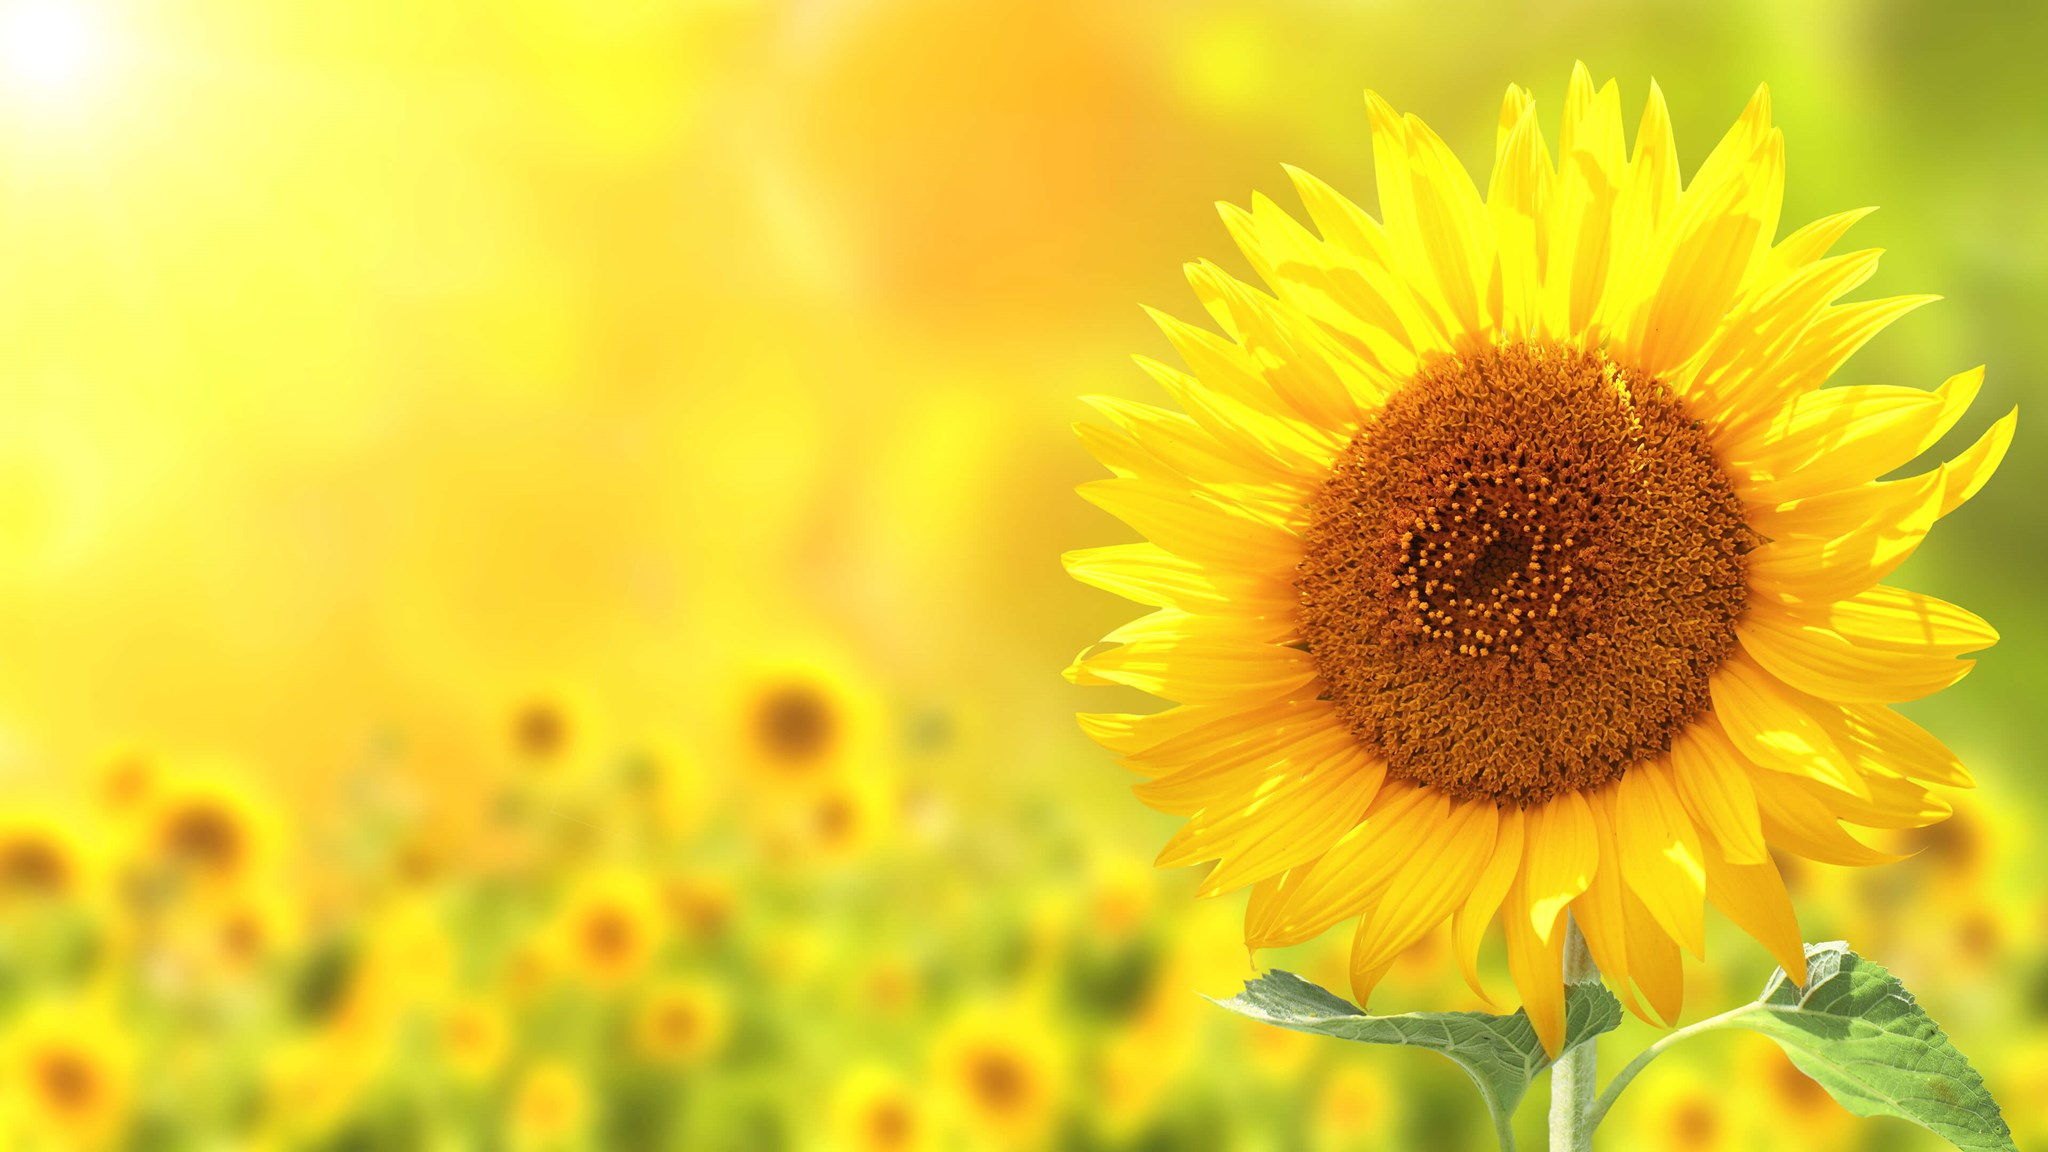 Palsgaard Can Deliver A Broad Range Of Non Palm Emulsifiers Made From Sunflower And Rapeseed Oil